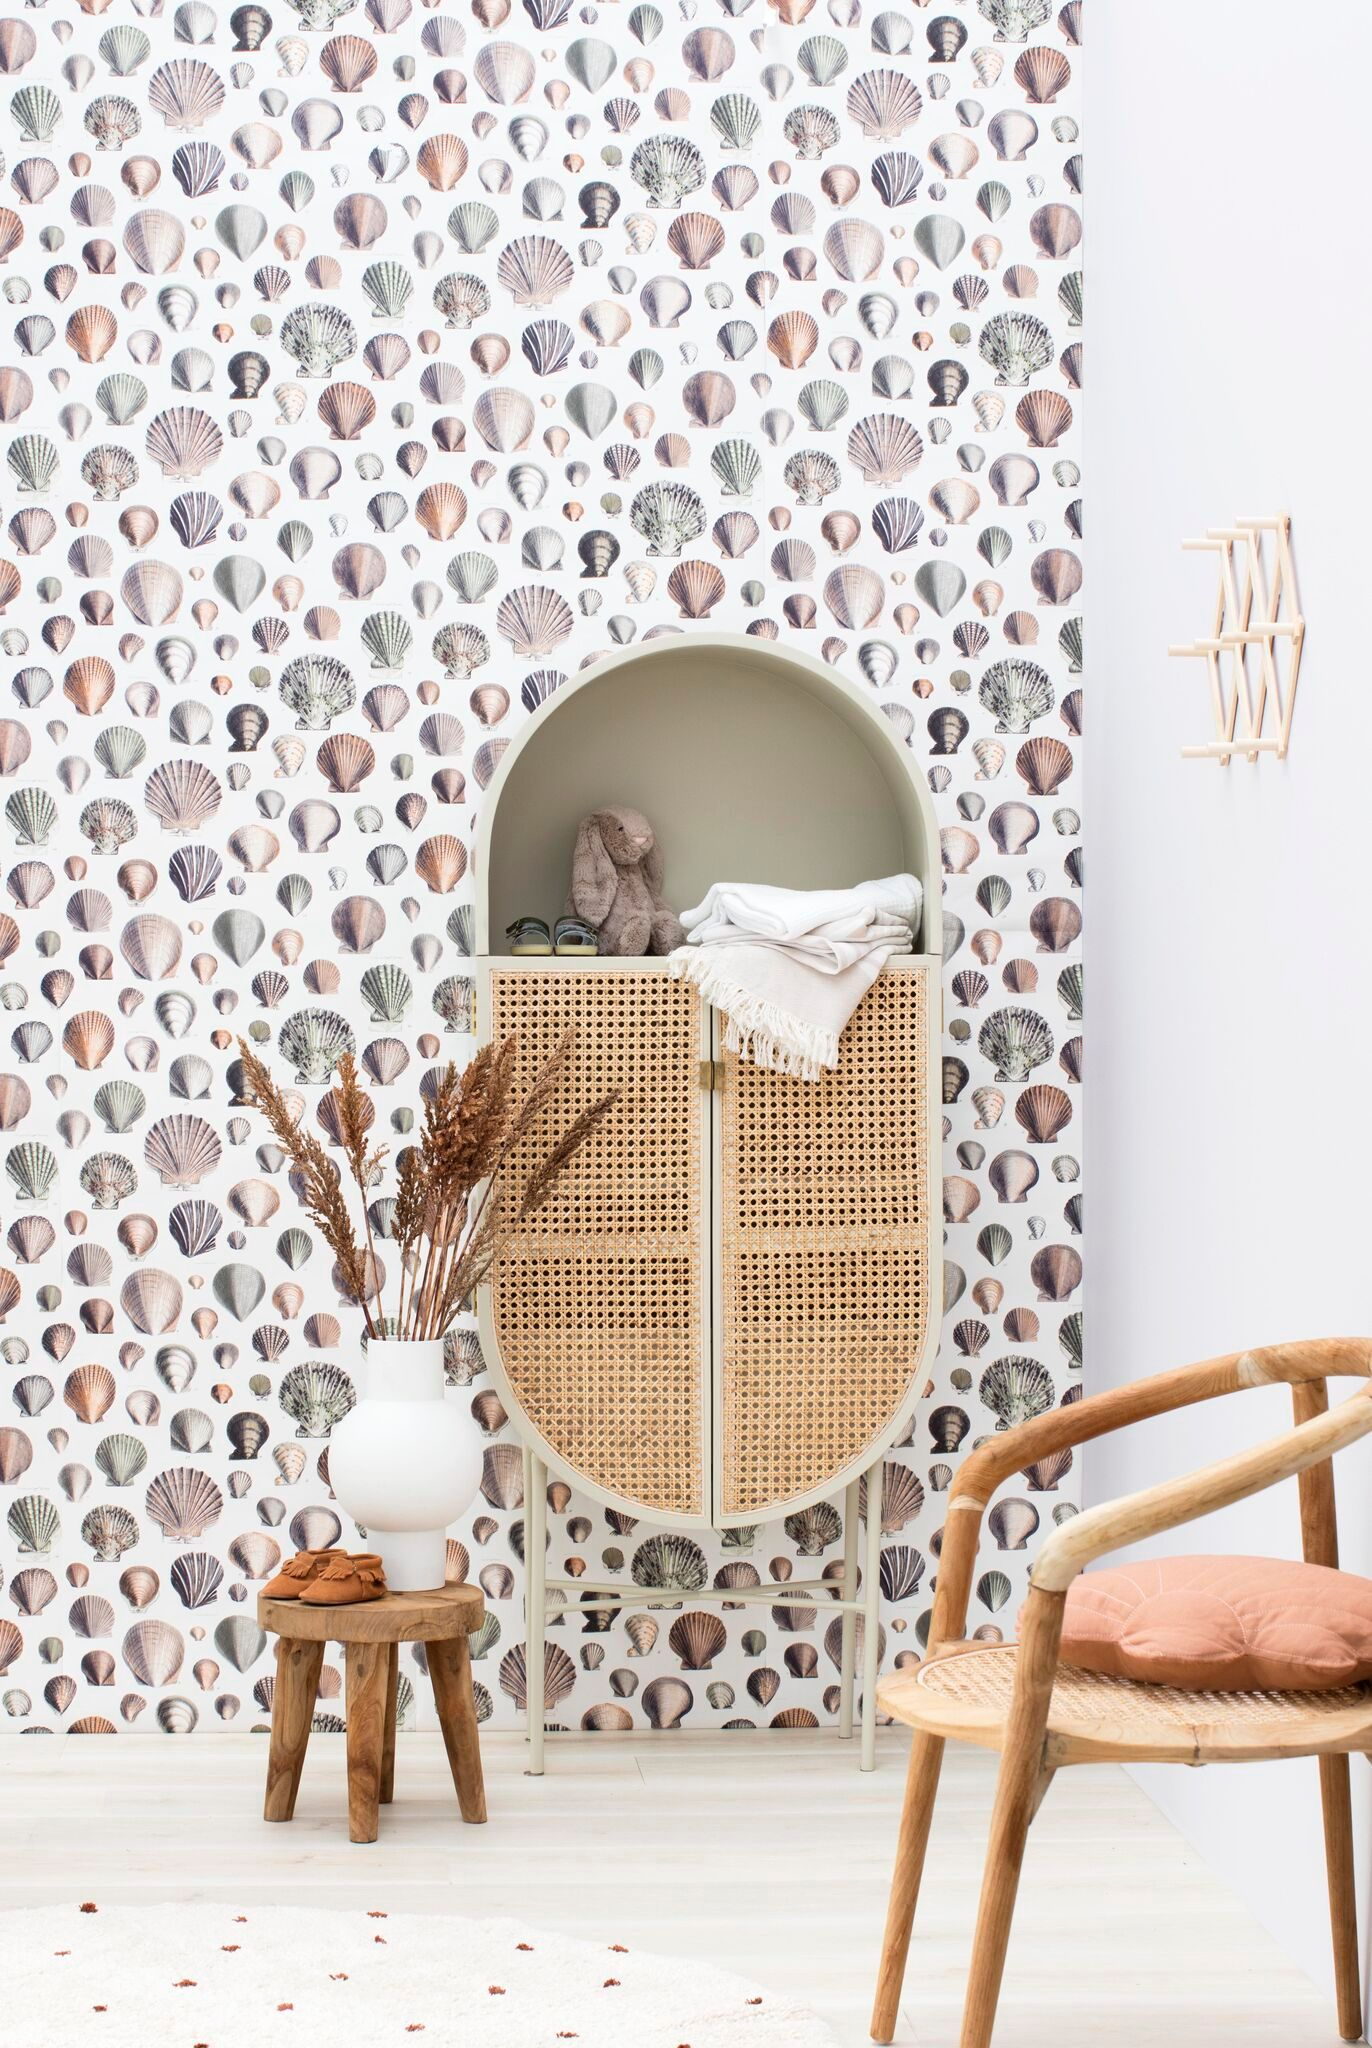 Chic From Cradle To The Grave Snap Wallpaper Captain Thomas Browns Shells In Oyster Bass Vintage Style Wallpaper Buy Wallpaper Online Shells Wallpaper